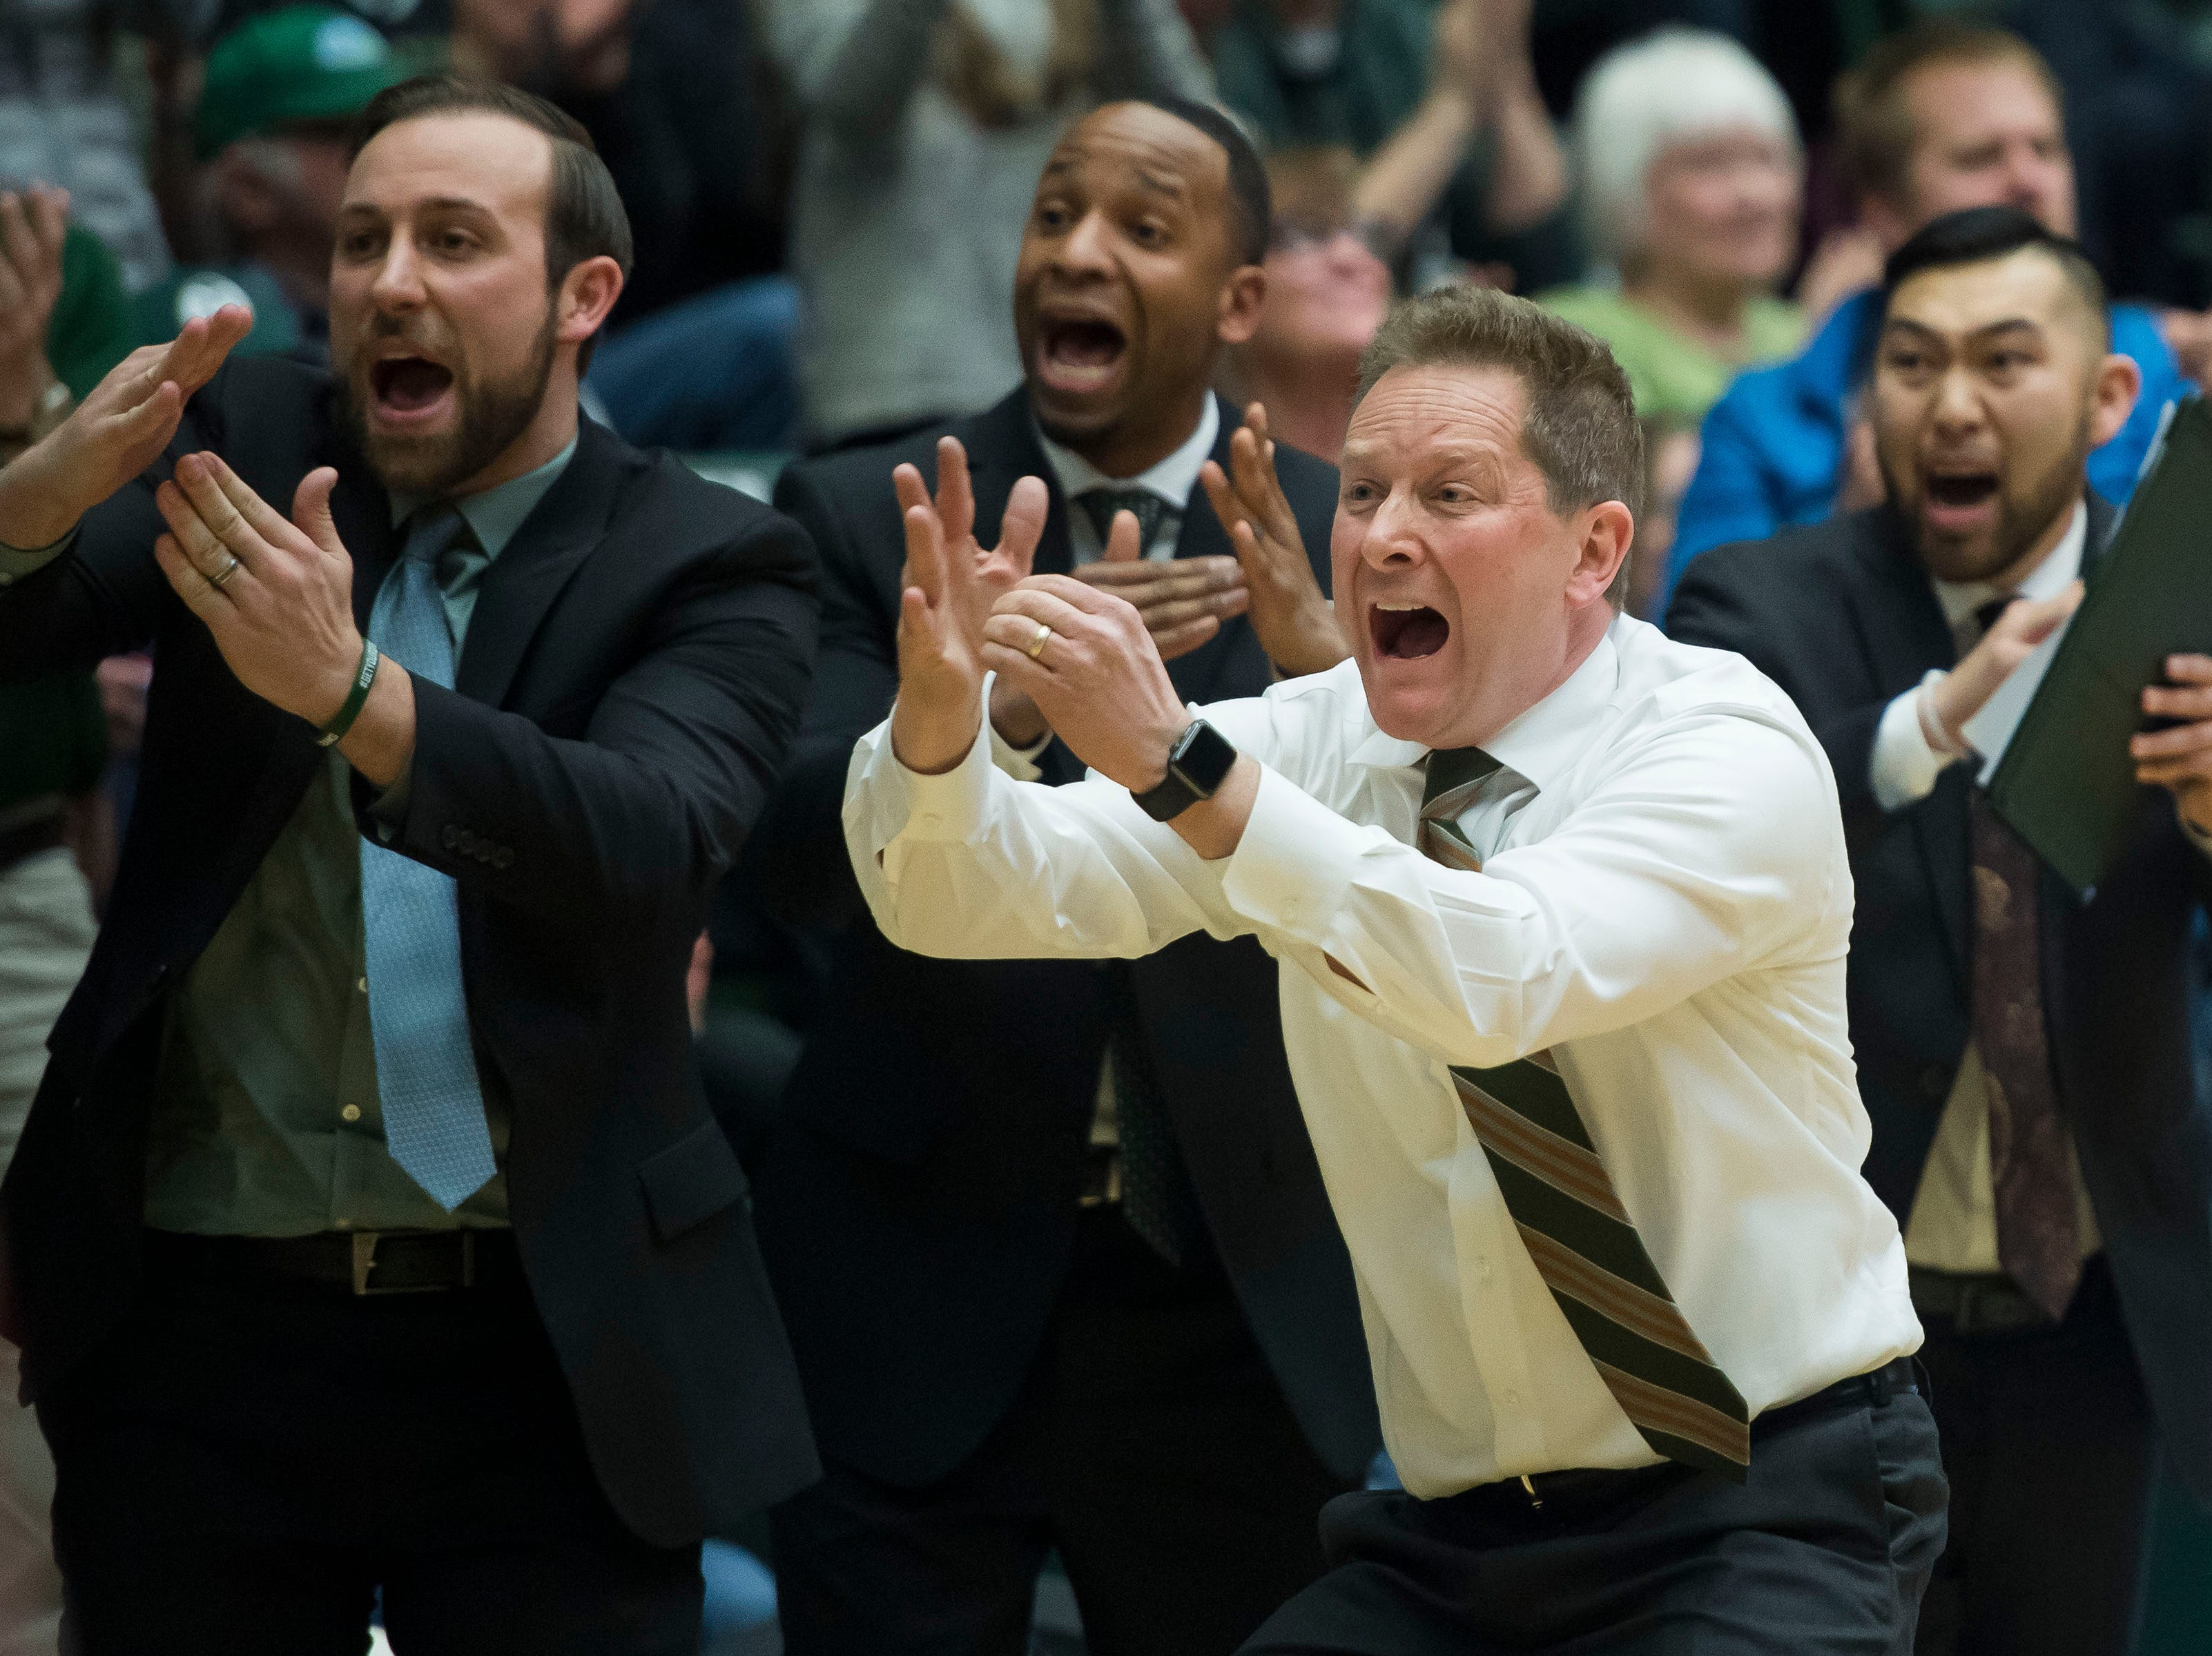 Colorado State University head coach Niko Medved attests to call a timeout during a game against University of Nevada, Las Vegas on Saturday, March 9, 2019, at Moby Arena in Fort Collins, Colo.